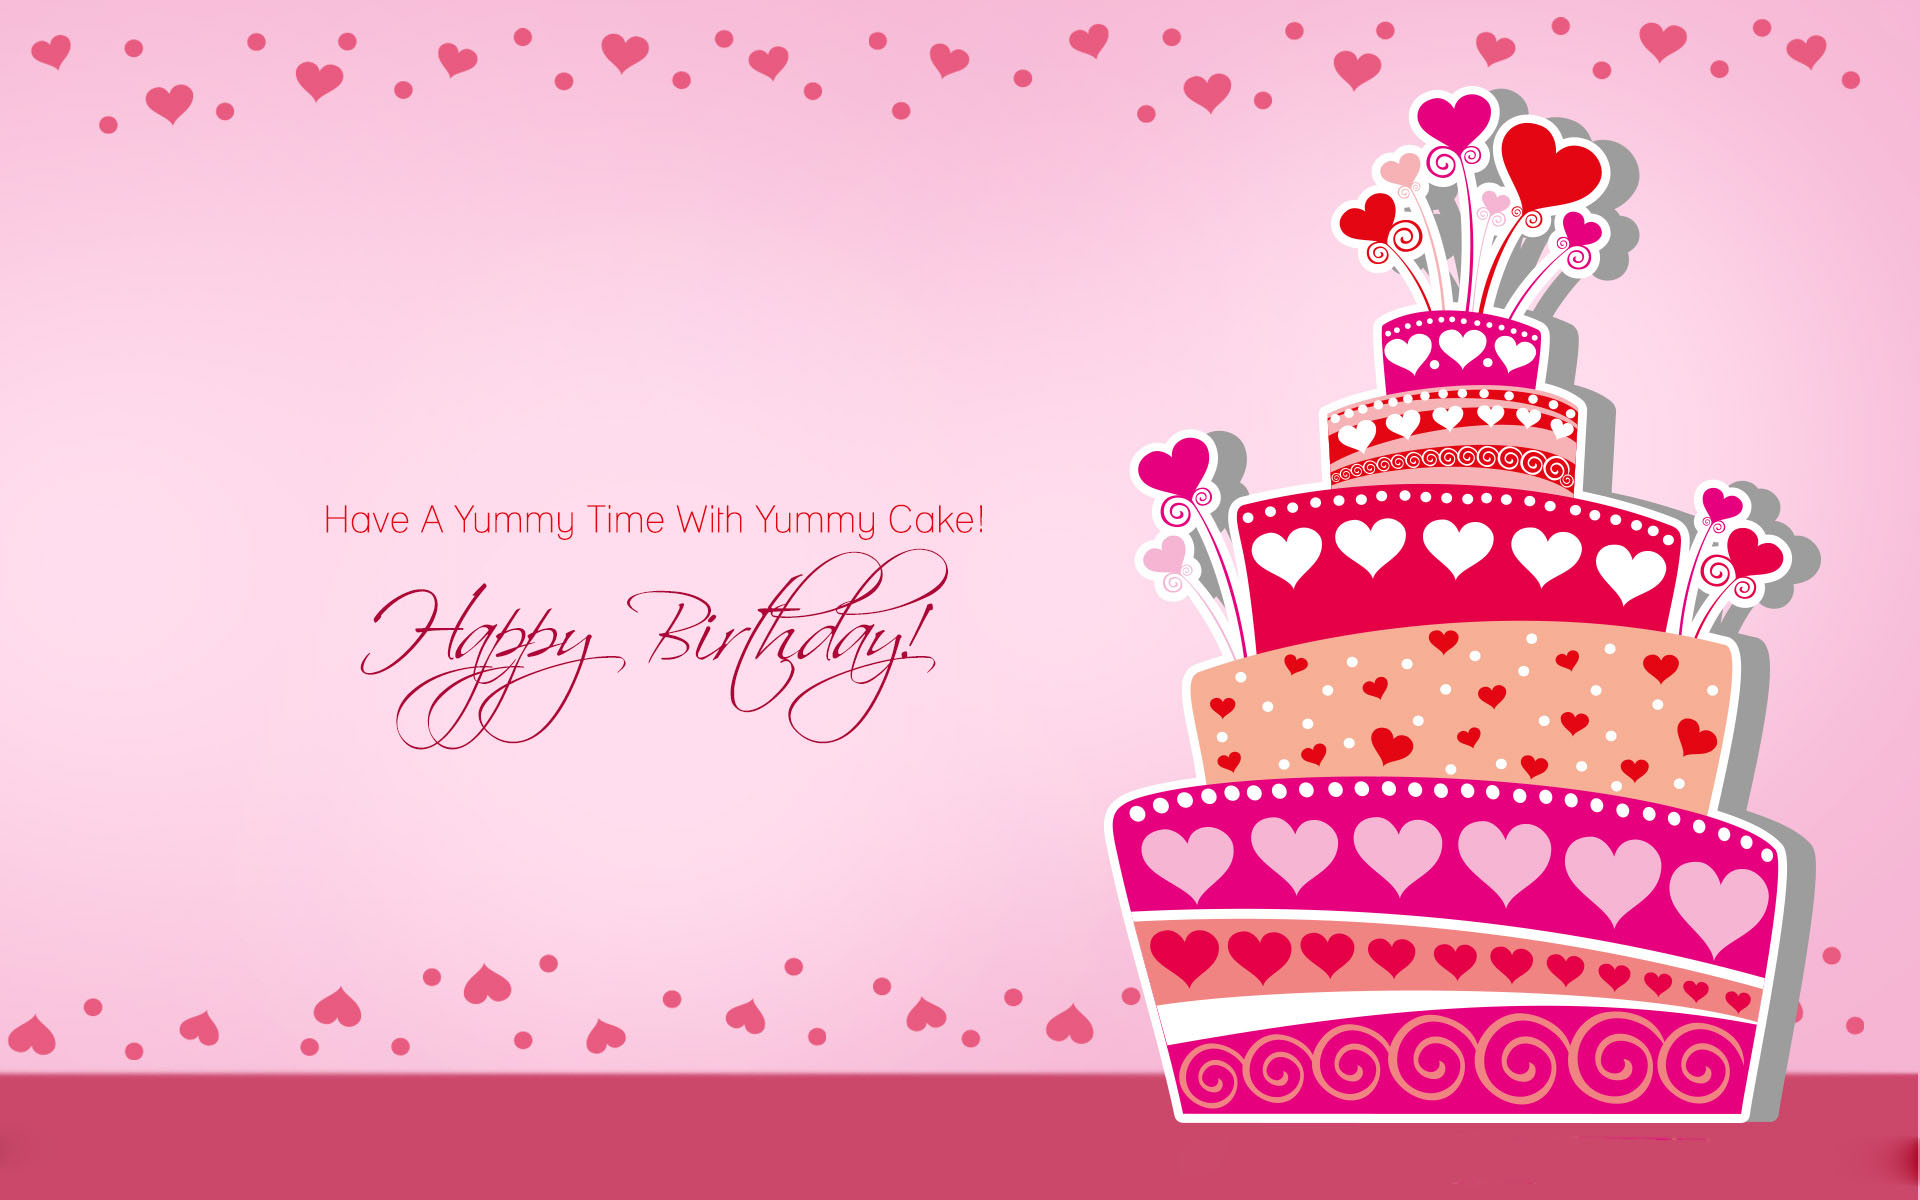 birthday girl wallpaper ; 95fd3d631f801e3f07fc566d330f5ec7